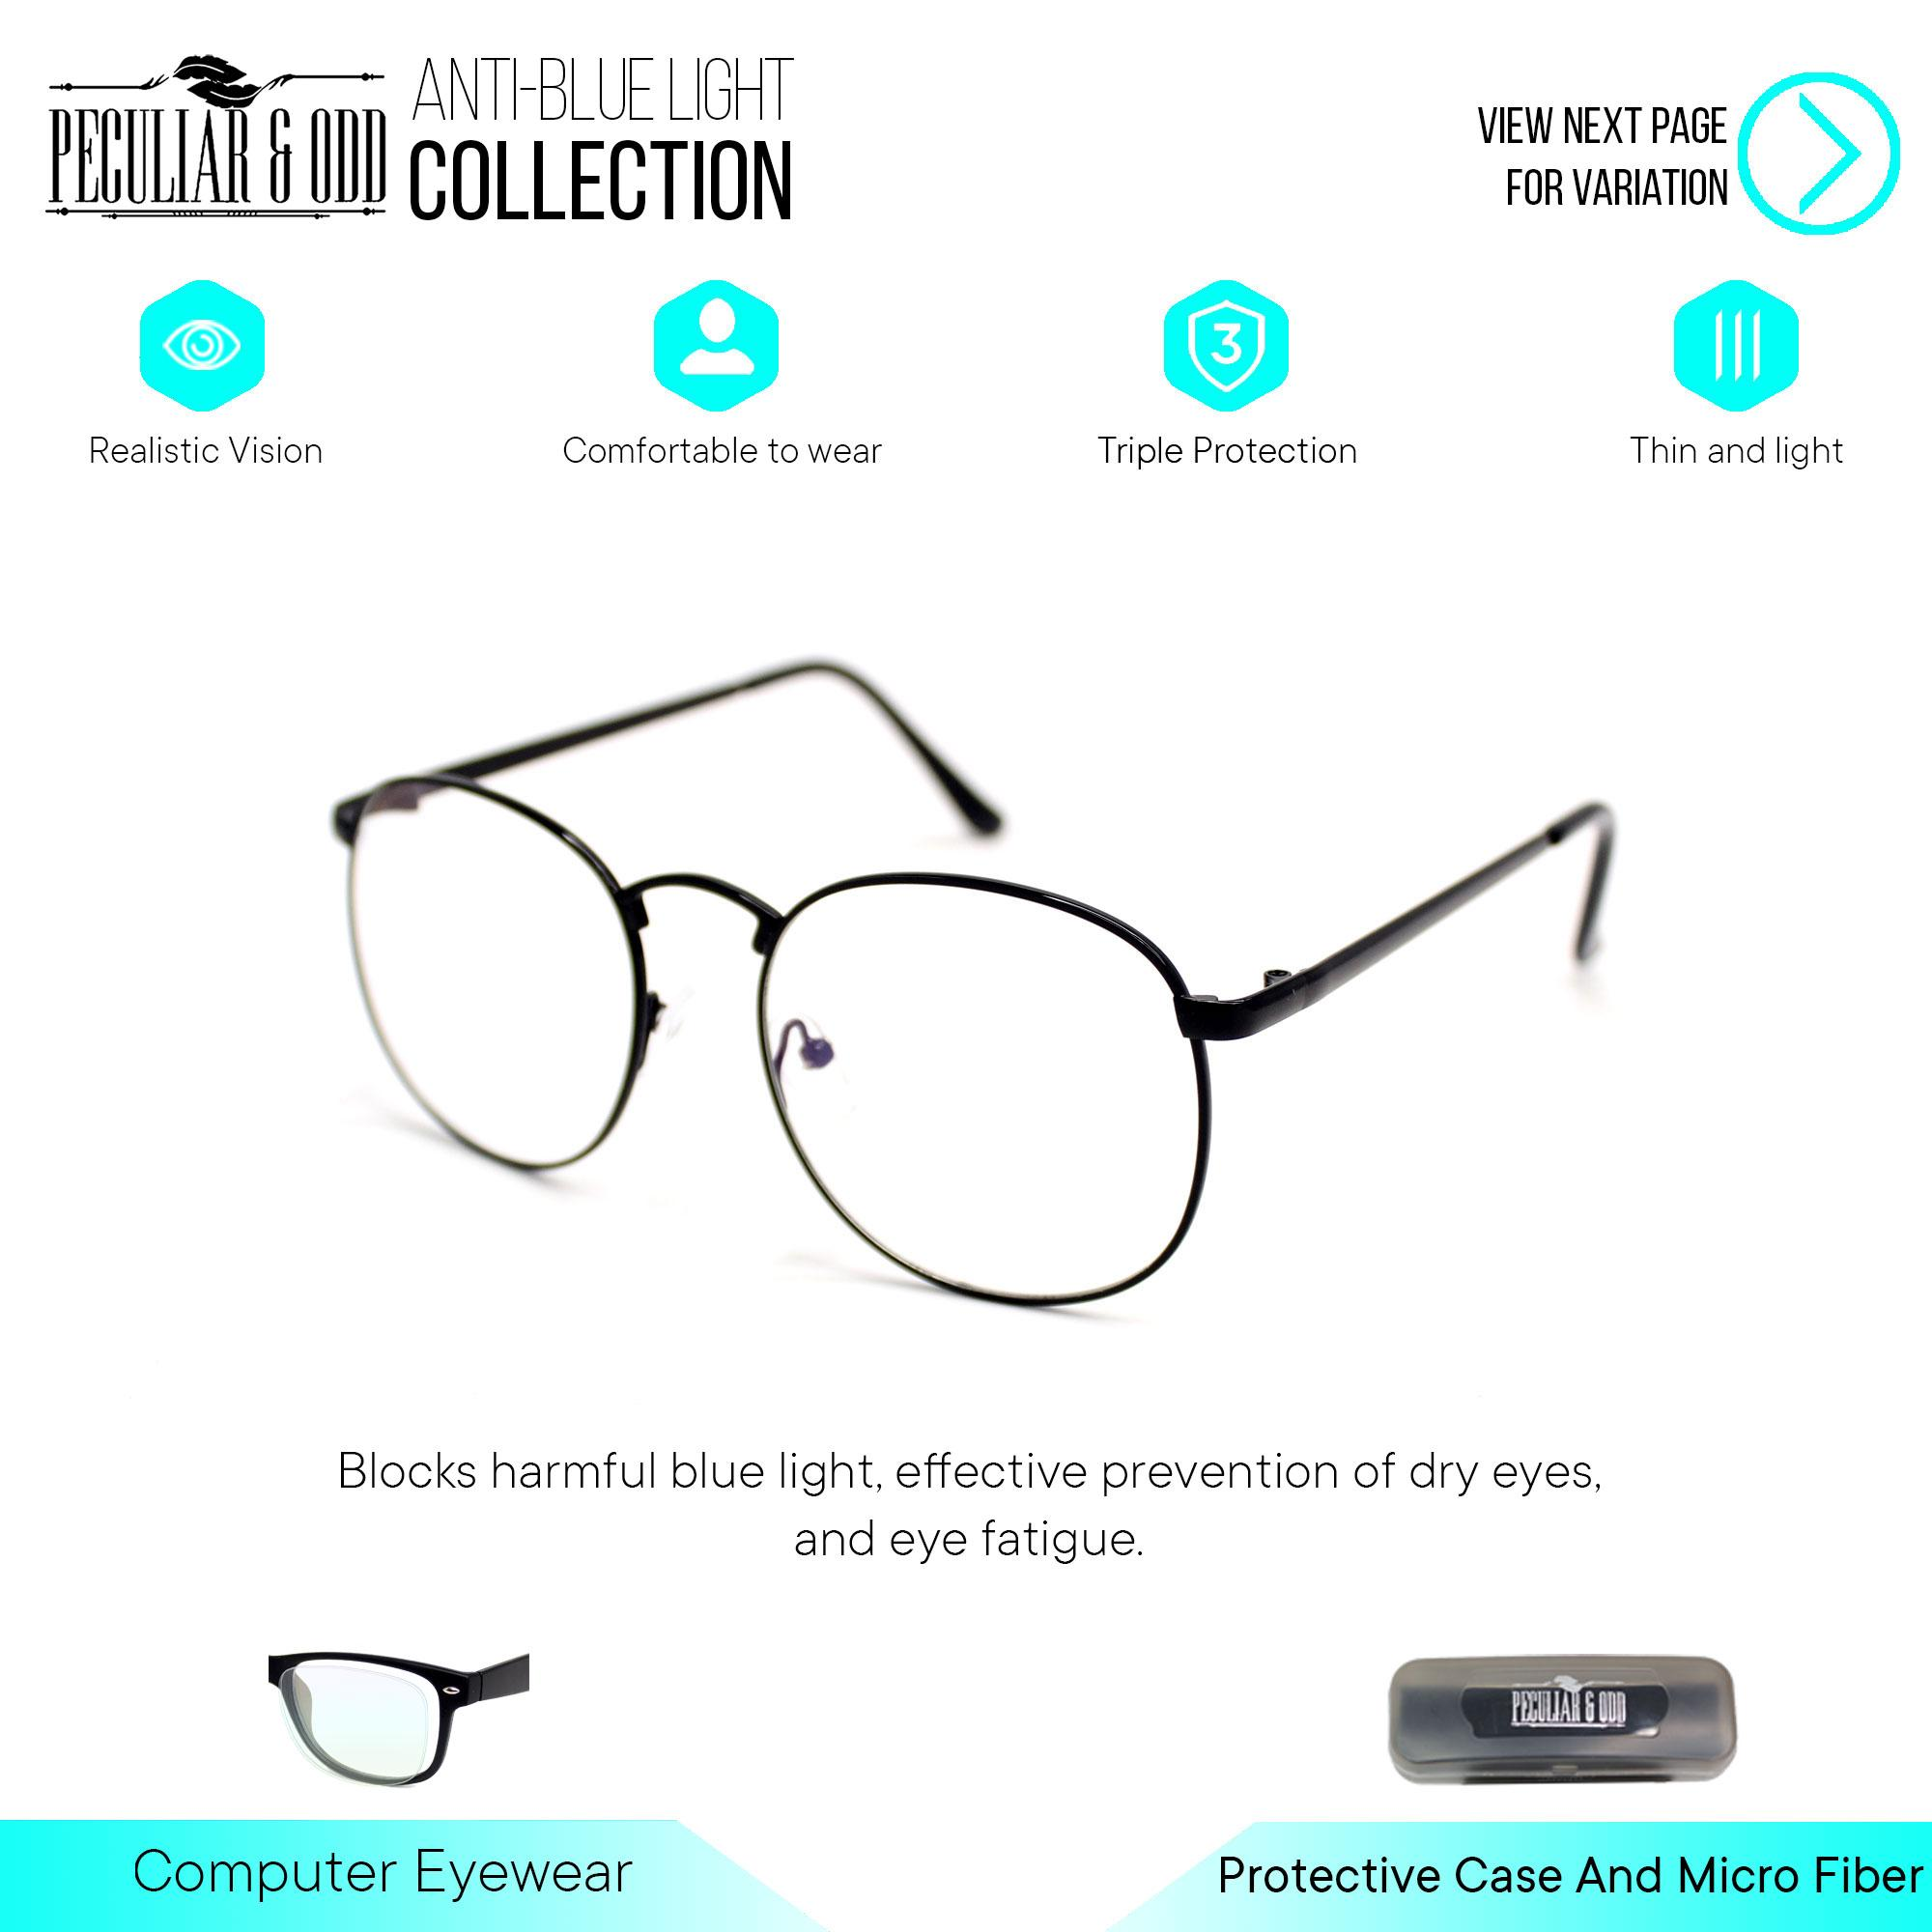 b4df4f50539 Peculiar Round Eyeglasses 8810 Antiradiation Lenses in Thin Metal Frame  Lightweight Replaceable Optical Lens Unisex Eyewear